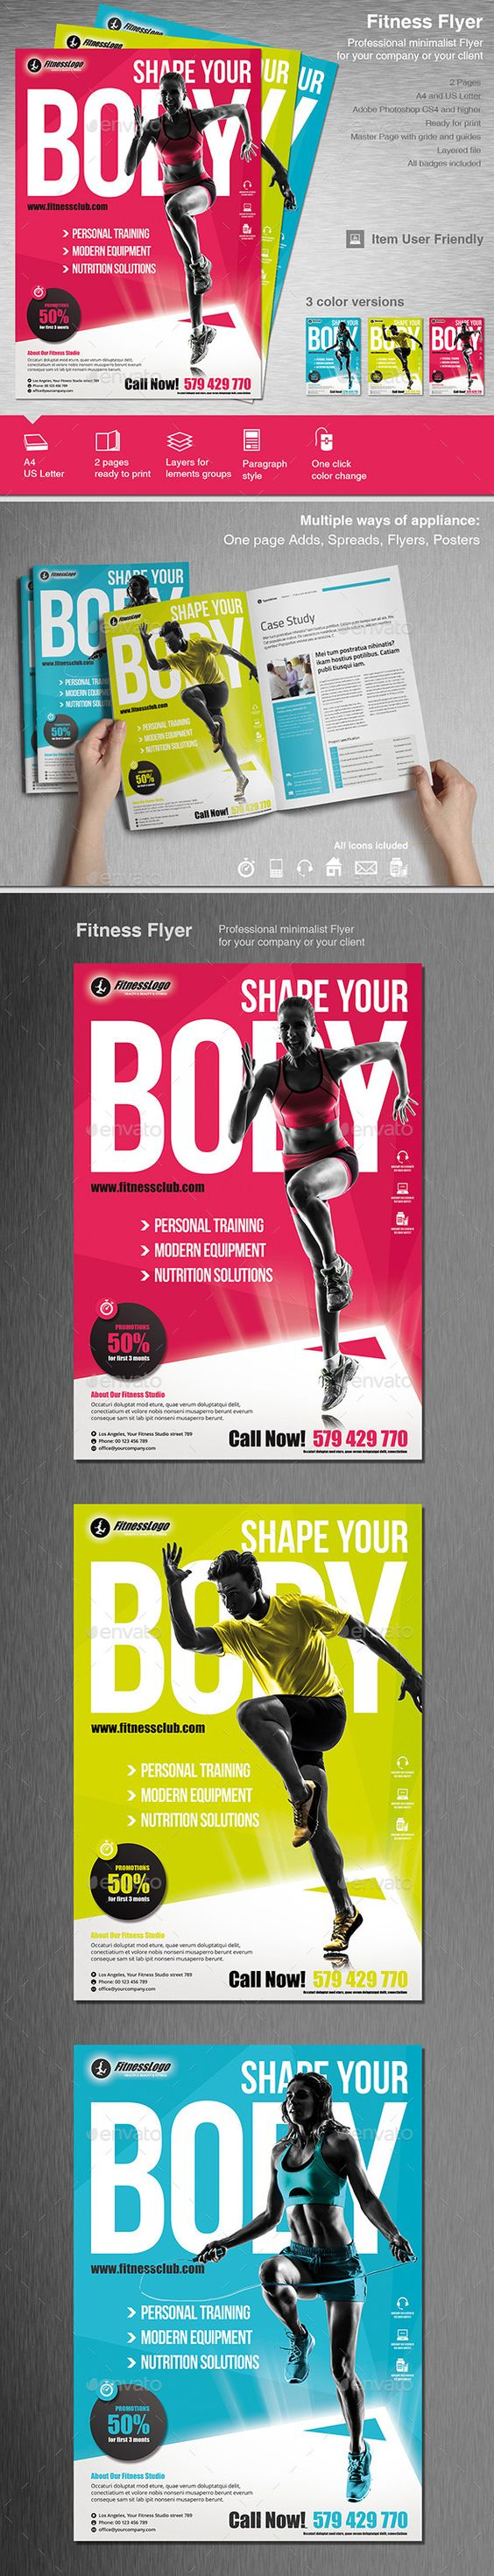 fitness flyer stretching design and events fitness flyer template design graphicriver net item